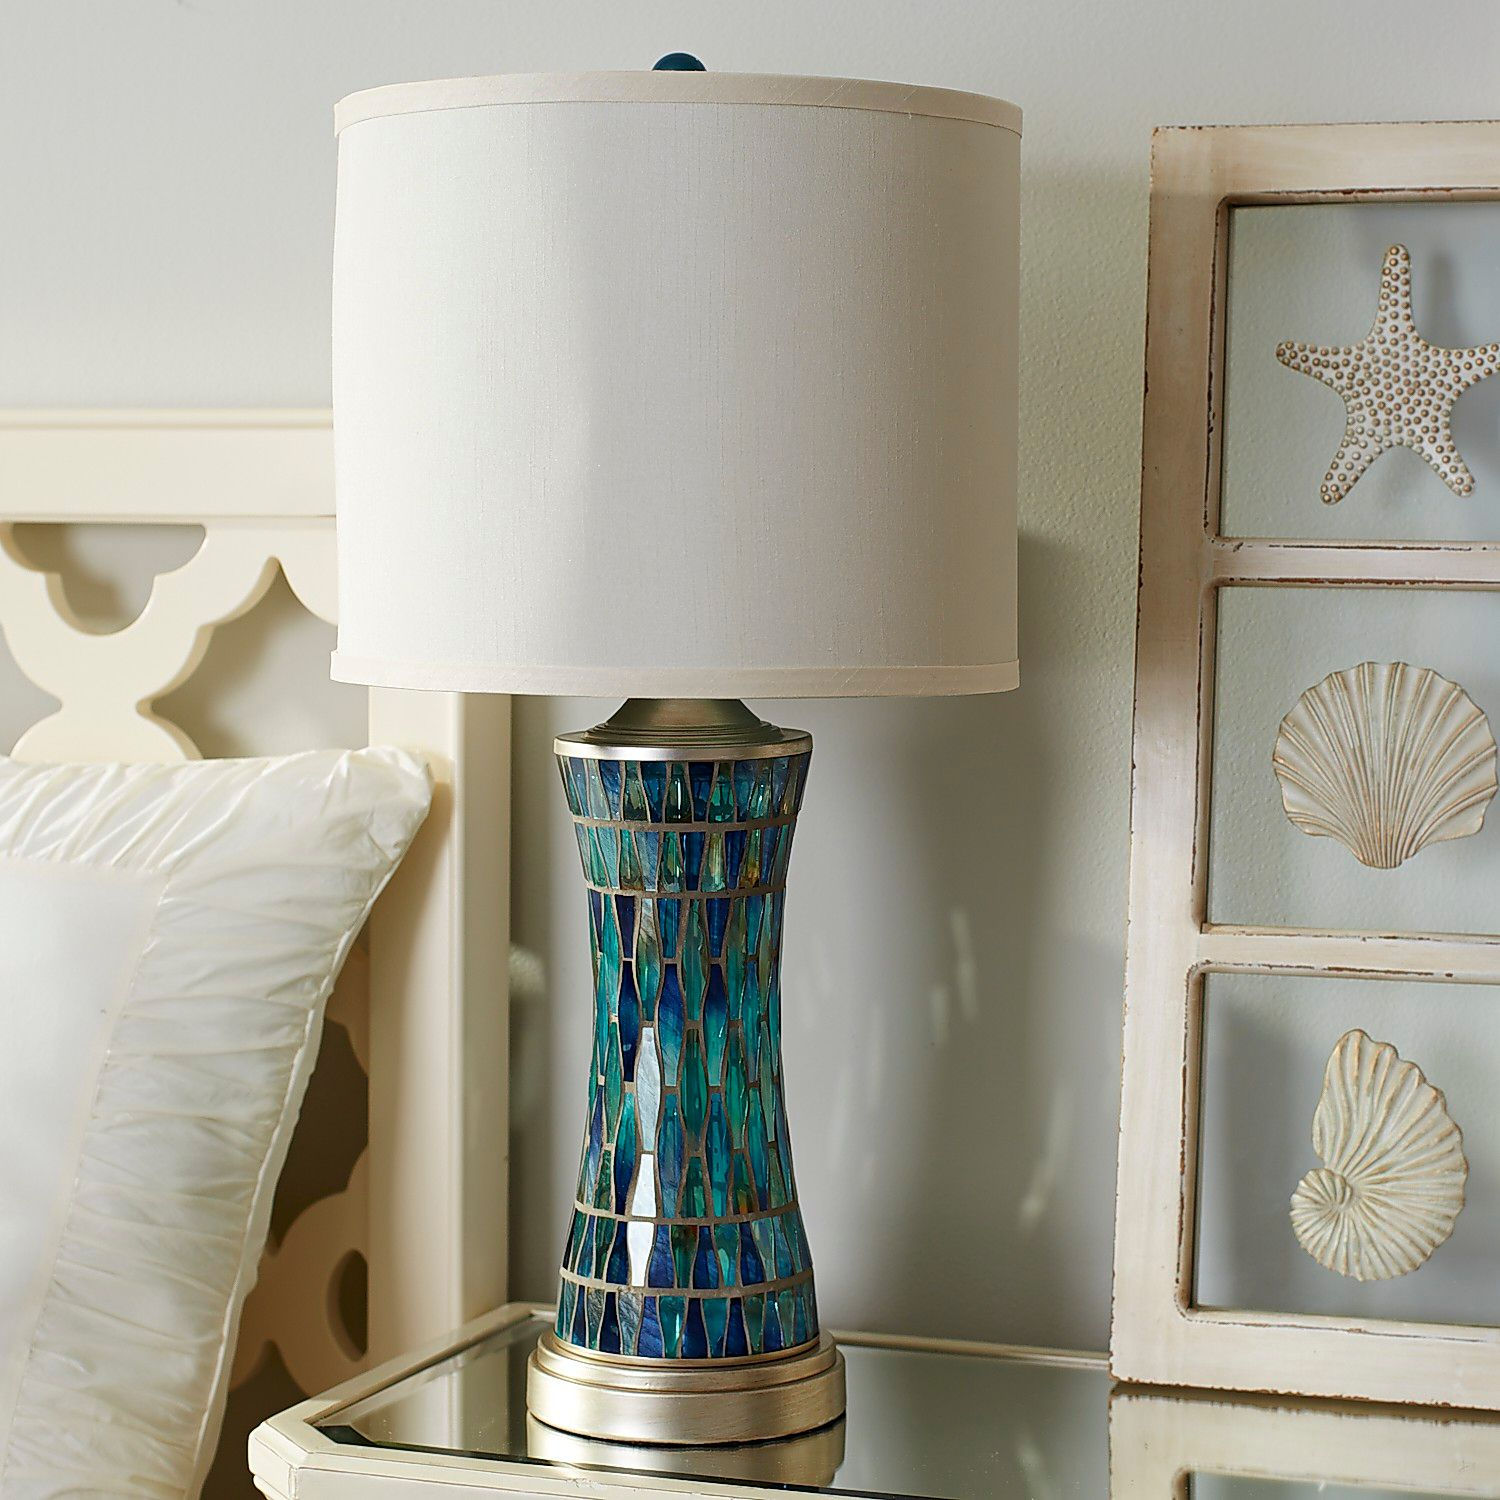 helena blue mosaic table lamp pier imports one accent lamps small console cabinet dining with six chairs that use batteries ikea storage baskets silver metal dale tiffany